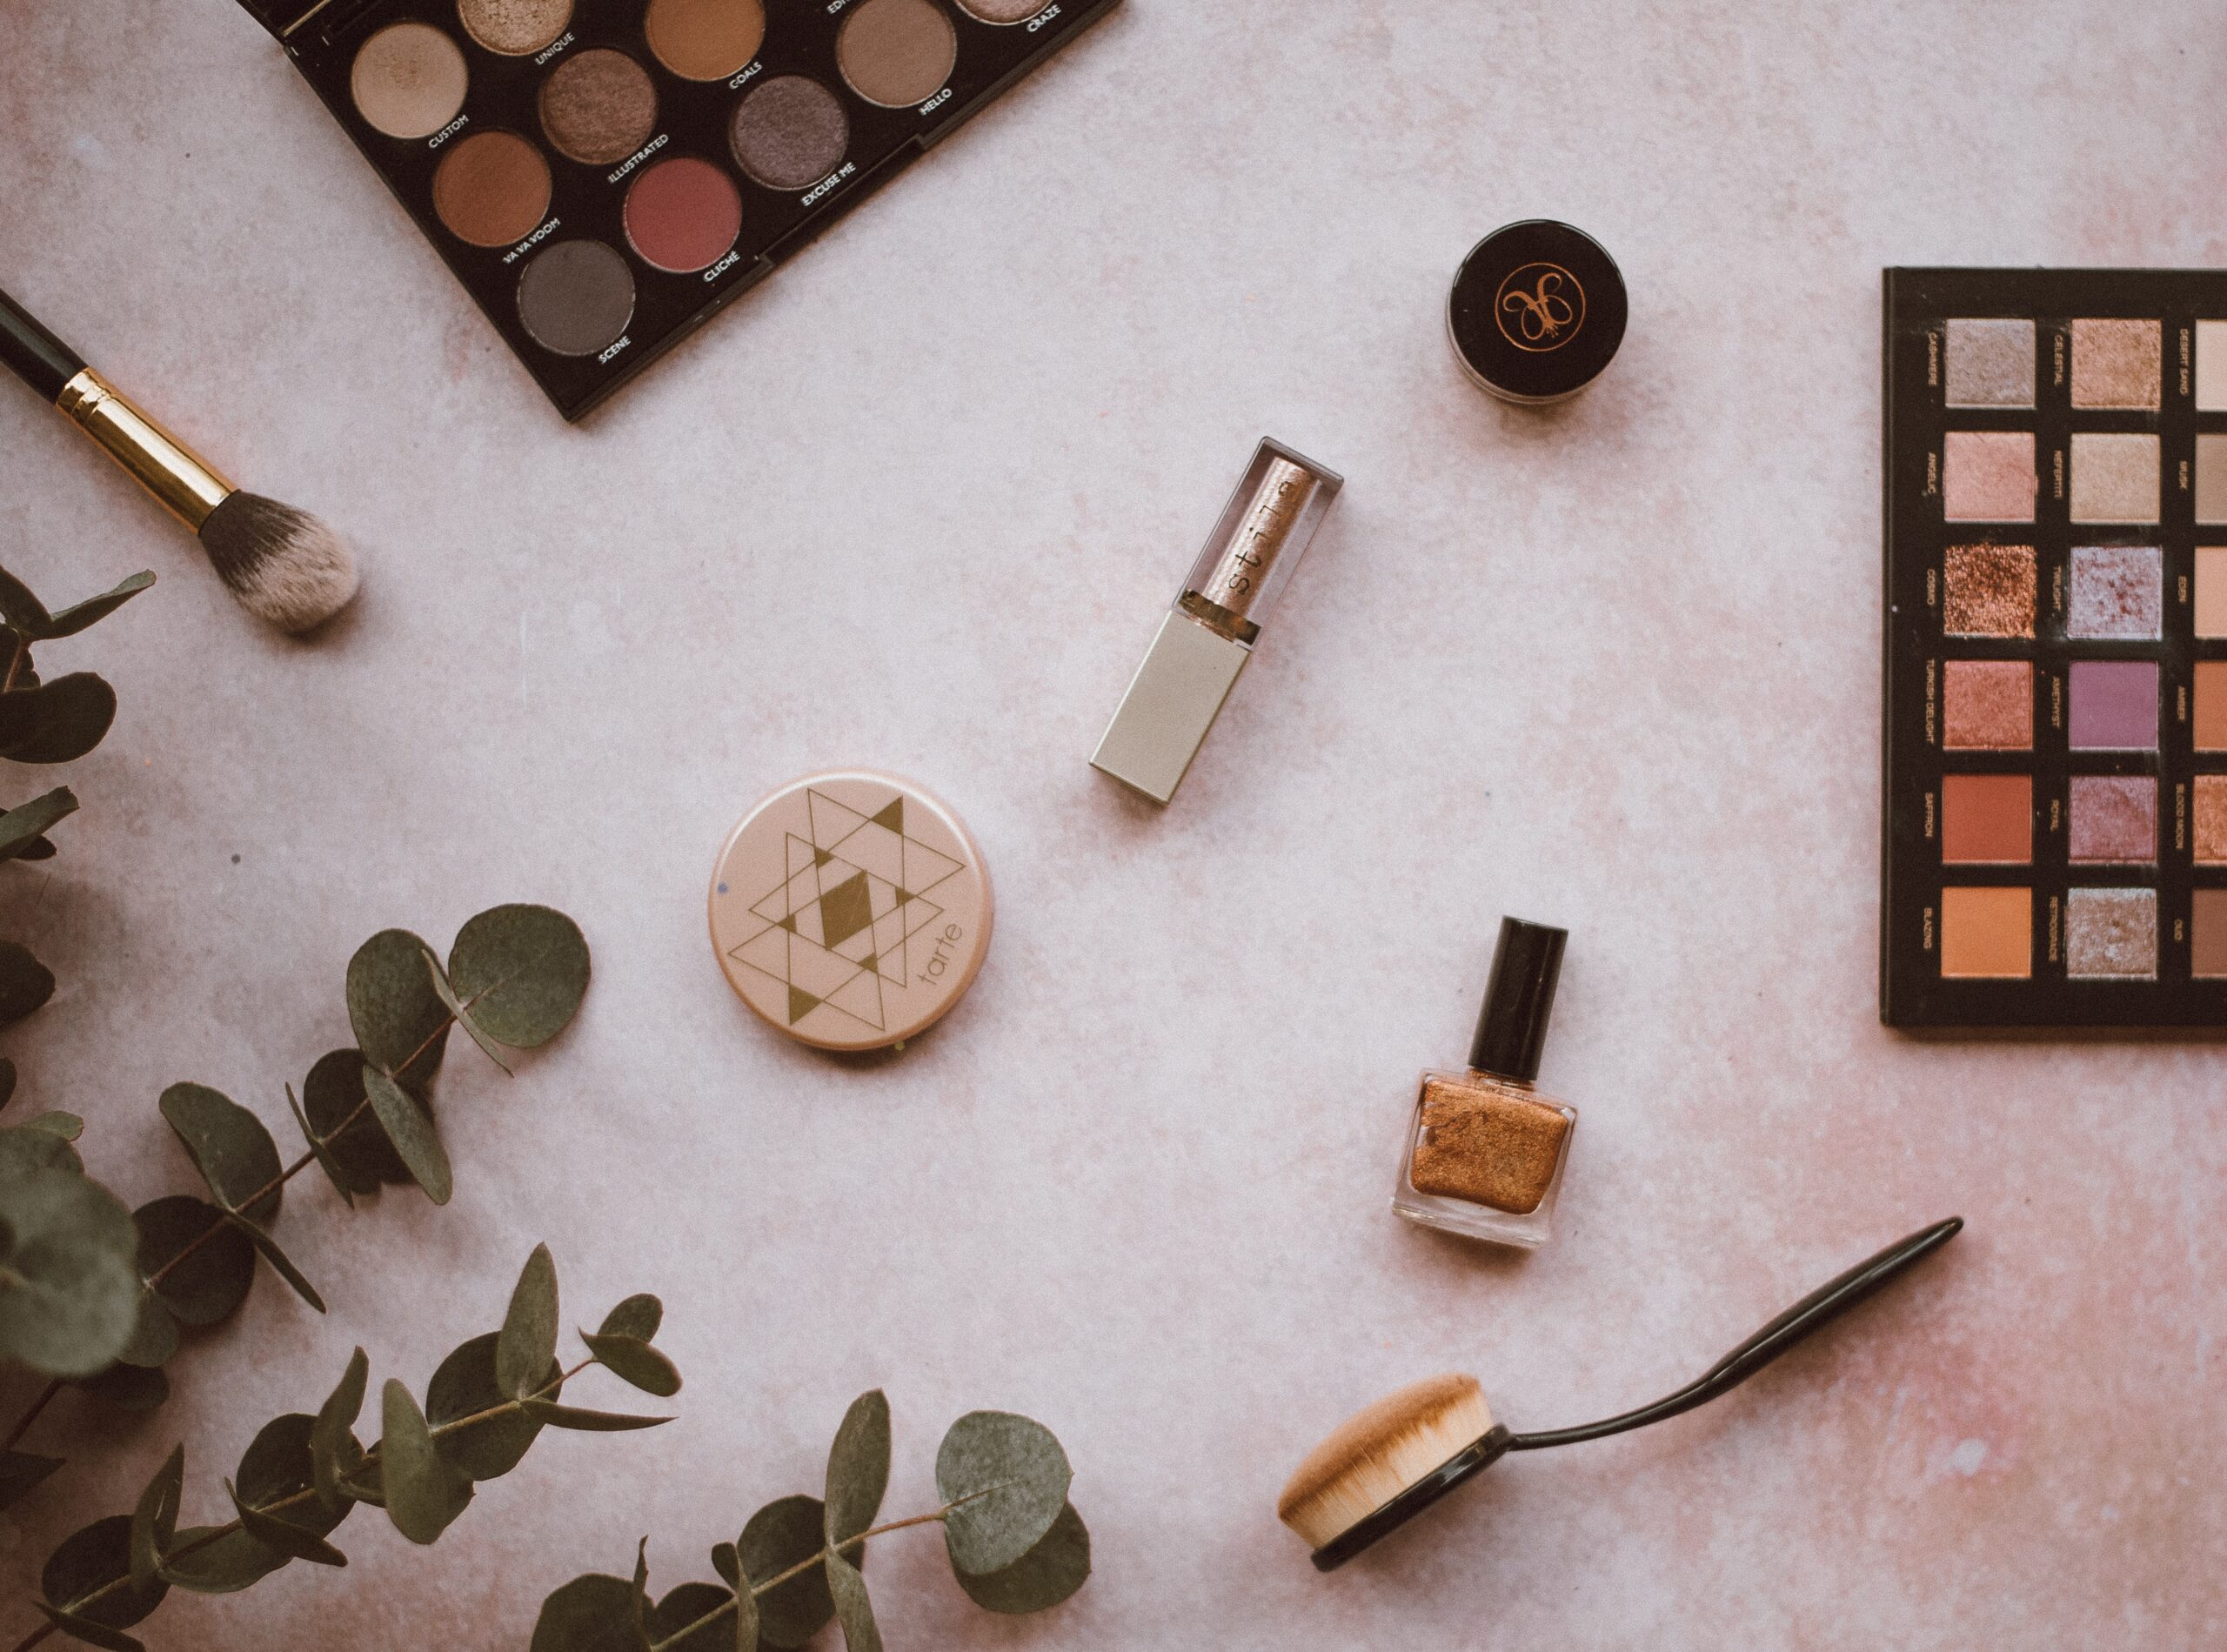 Activism within the beauty community: Great brands with powerful messages